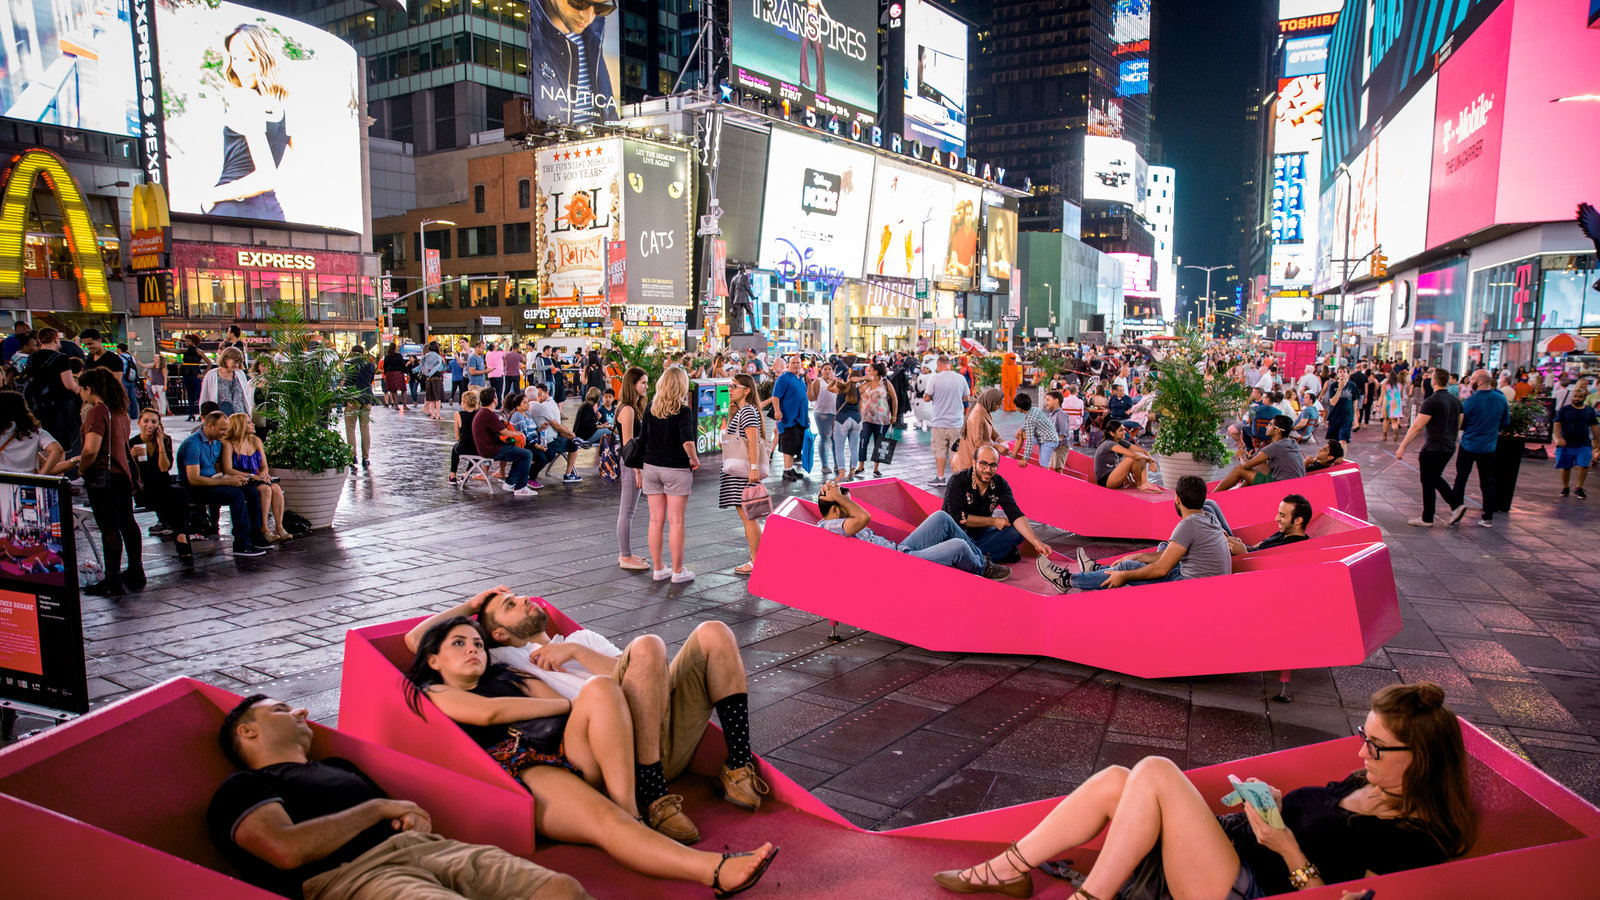 Relaxation is always found in Times Square